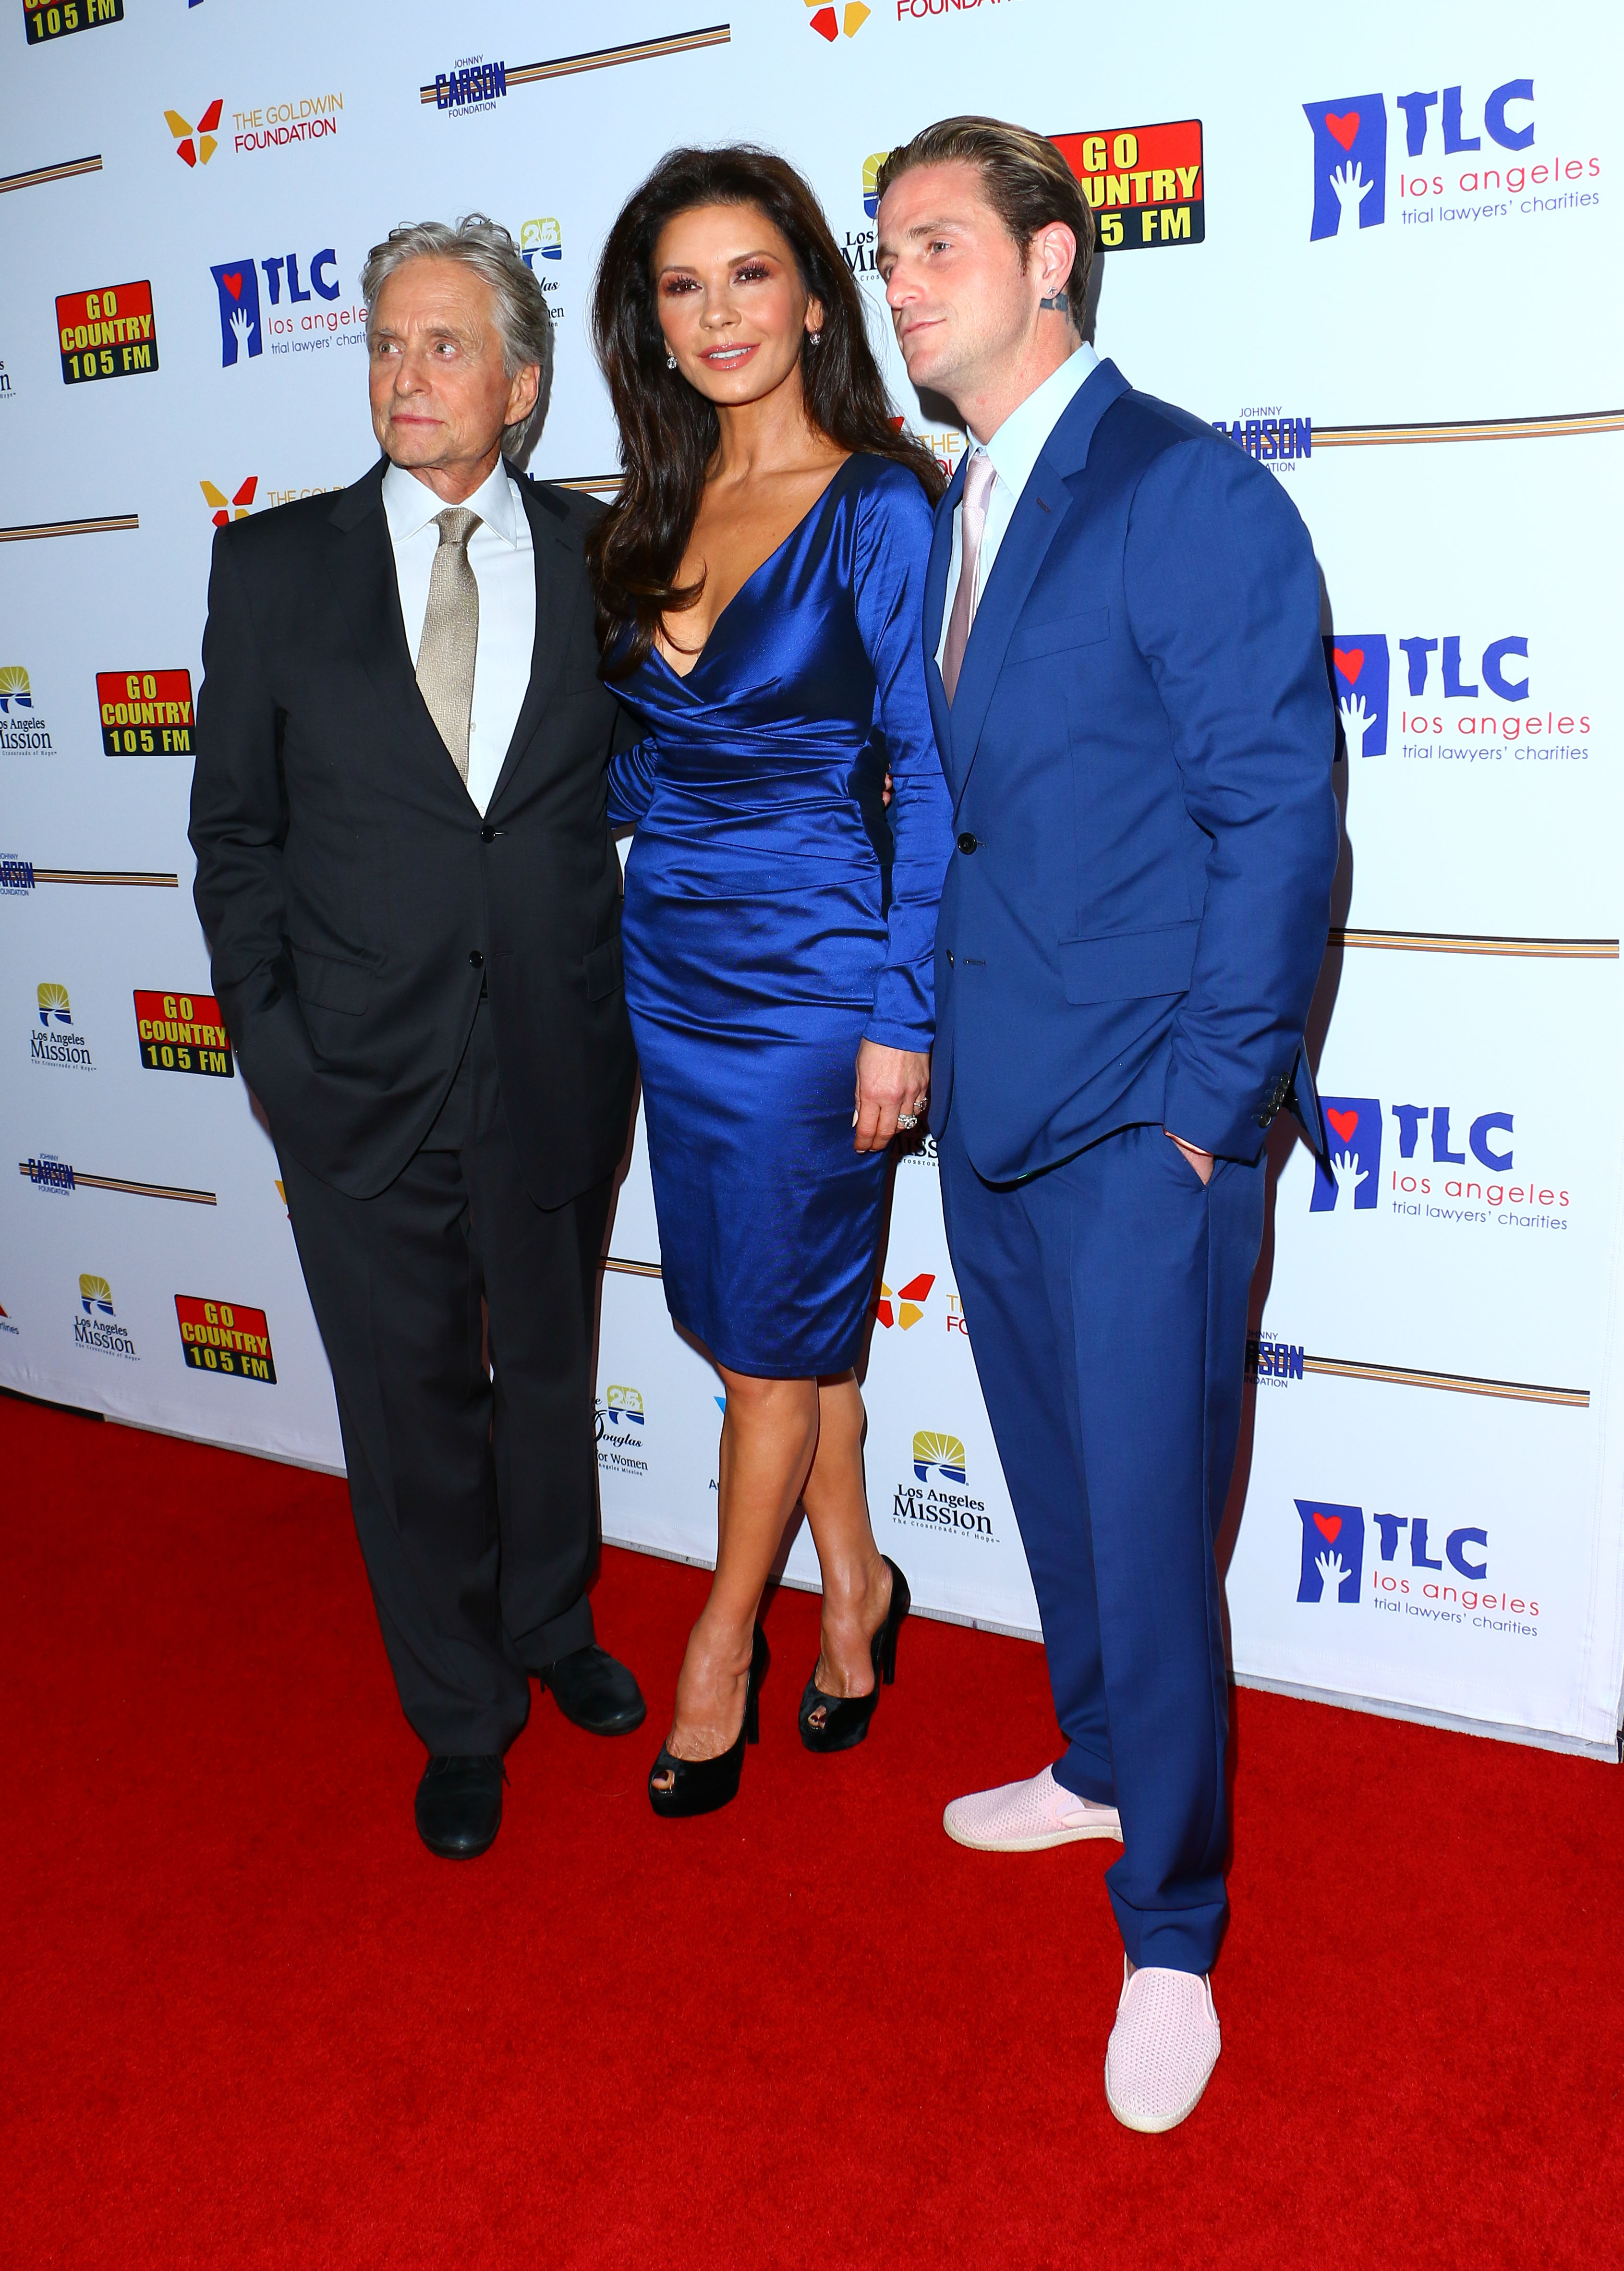 Catherine Zeta-Jones honored at the 7th Annual Legacy of Vision Gala in Los Angeles, CA. <P> Pictured: Michael Douglas, Catherine Zeta-Jones and Cameron Douglas <B>Ref: SPL1617100  091117  </B><BR/> Picture by: ITM / Splash News<BR/> </P><P> <B>Splash News and Pictures</B><BR/> Los Angeles:310-821-2666<BR/> New York:212-619-2666<BR/> London:870-934-2666<BR/> <span id=